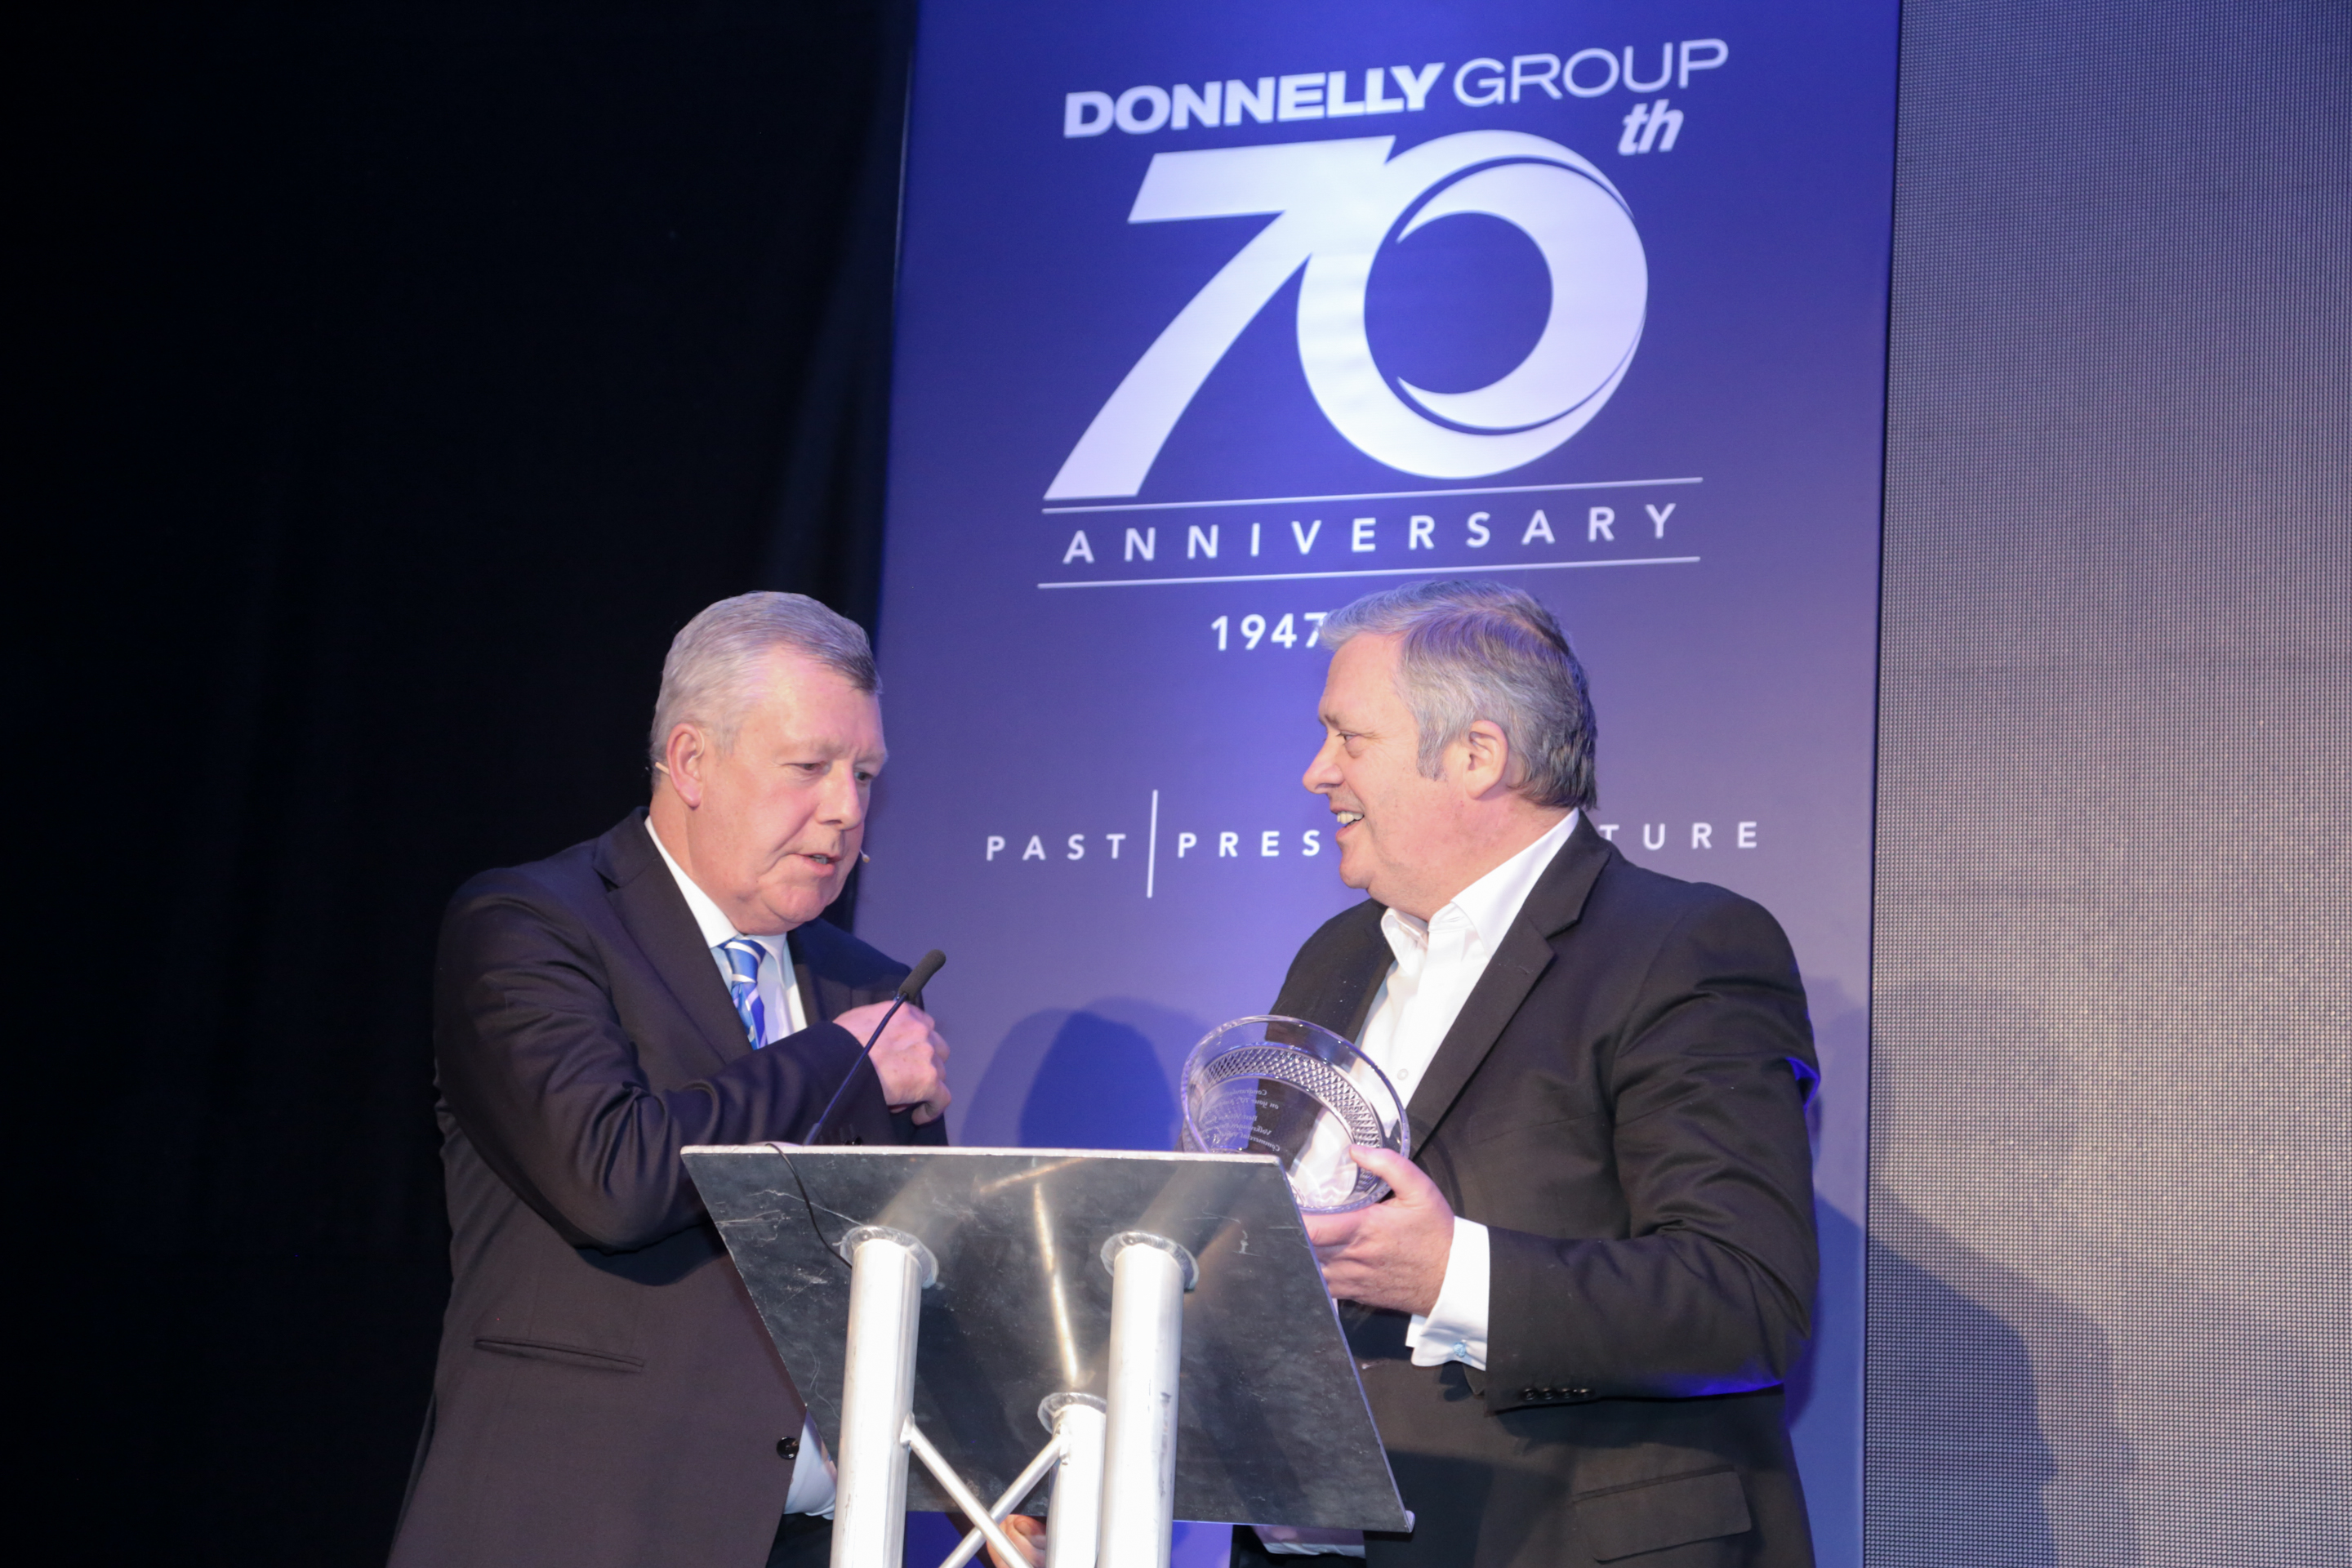 Donnelly Group Public Relations: Volkswagen UK managing director Paul Willis congratulates Terence Donnelly